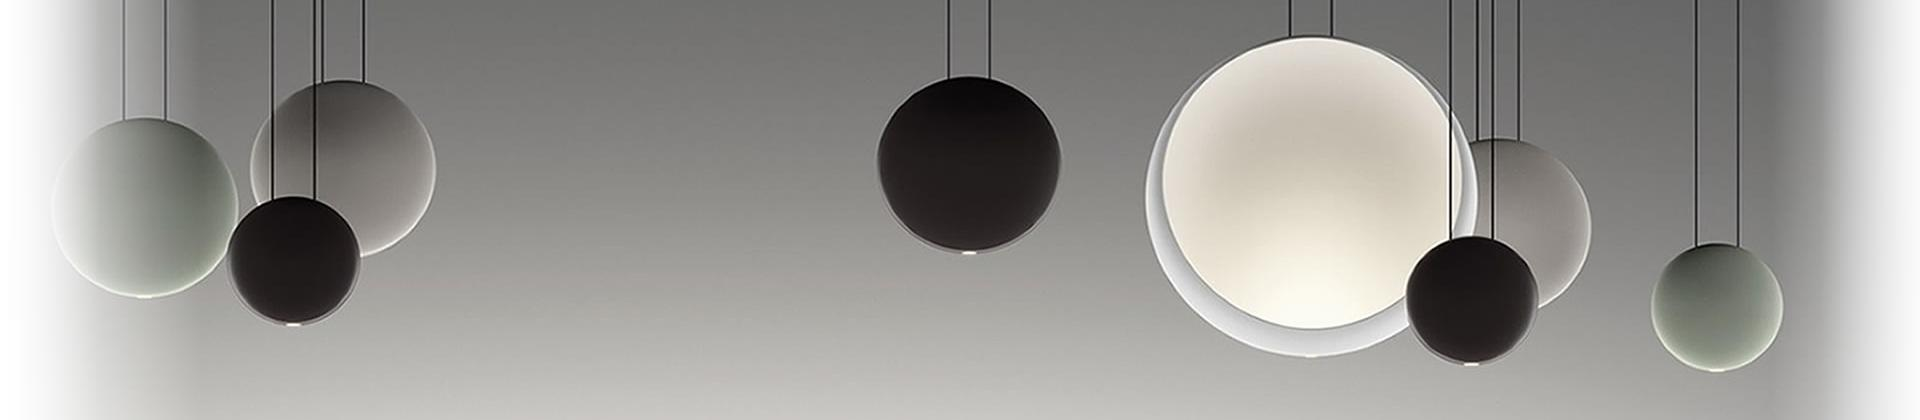 Design suspended lamps Rhythm by Vibia